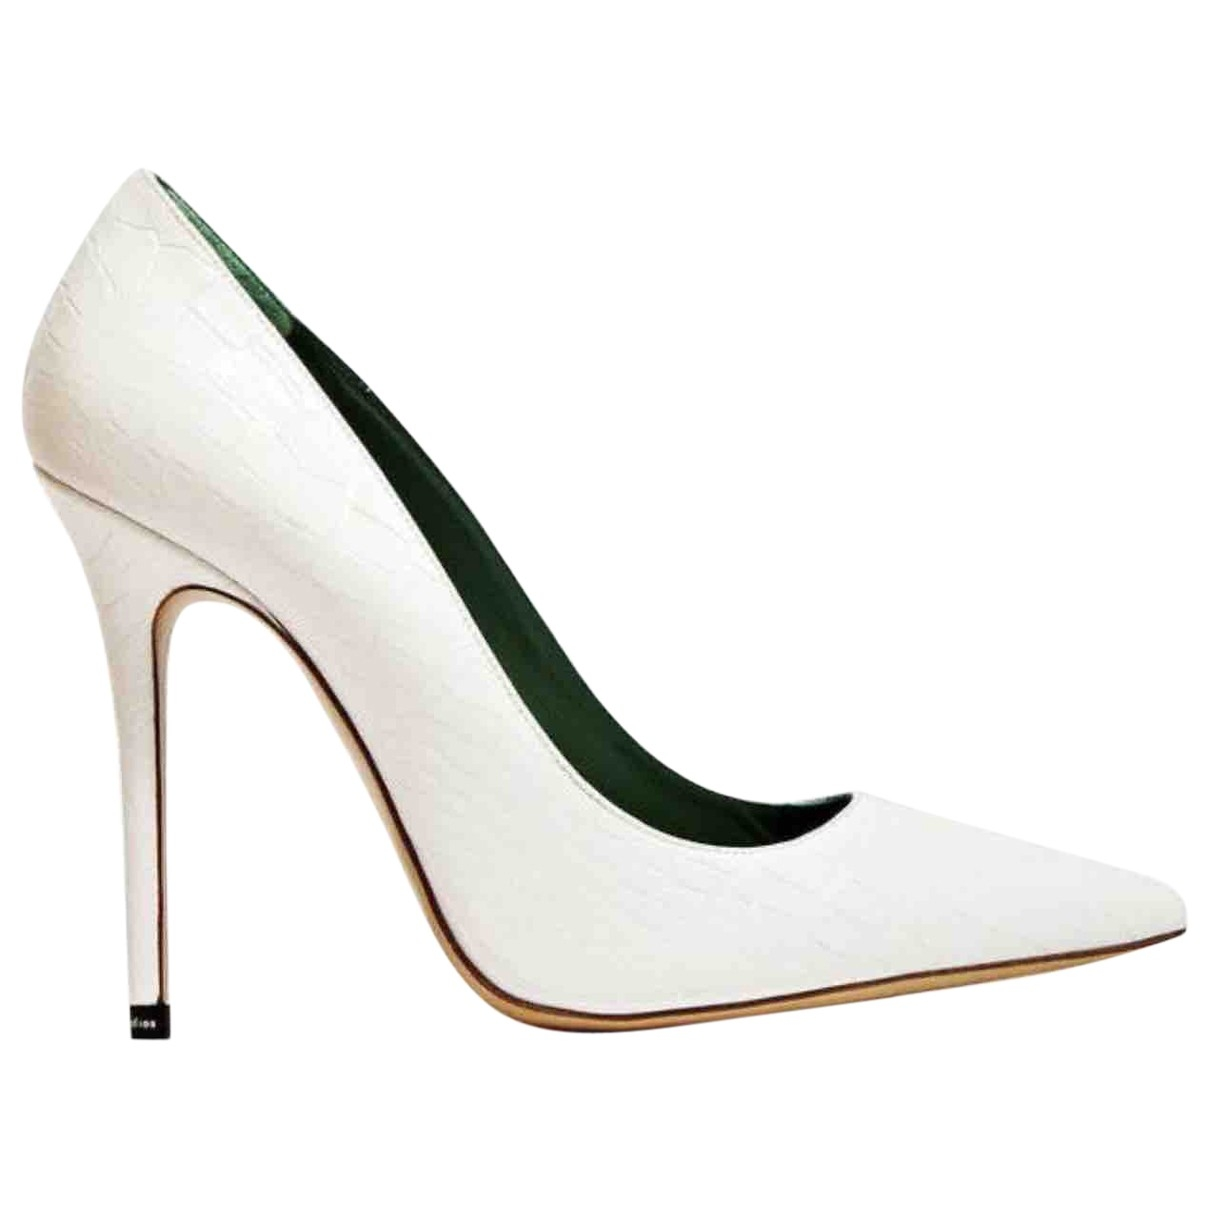 Acne Studios \N White Leather Heels for Women 36 EU